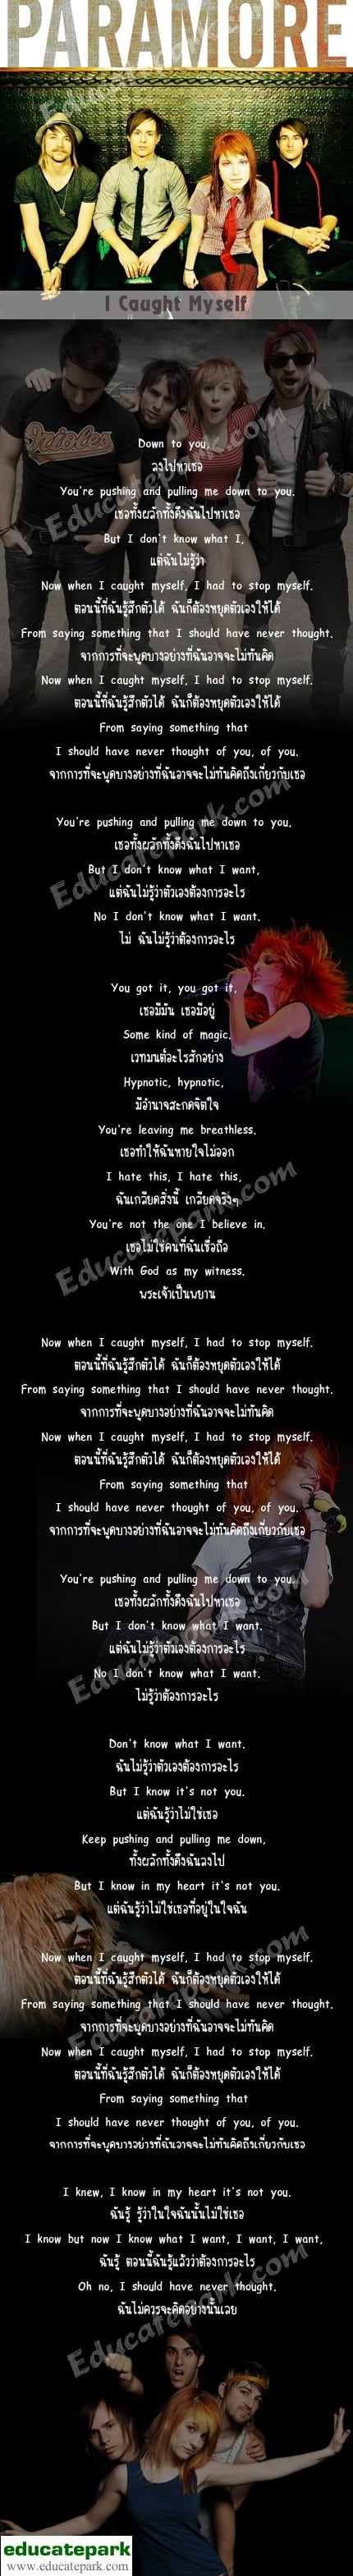 แปลเพลง I Caught Myself - Paramore